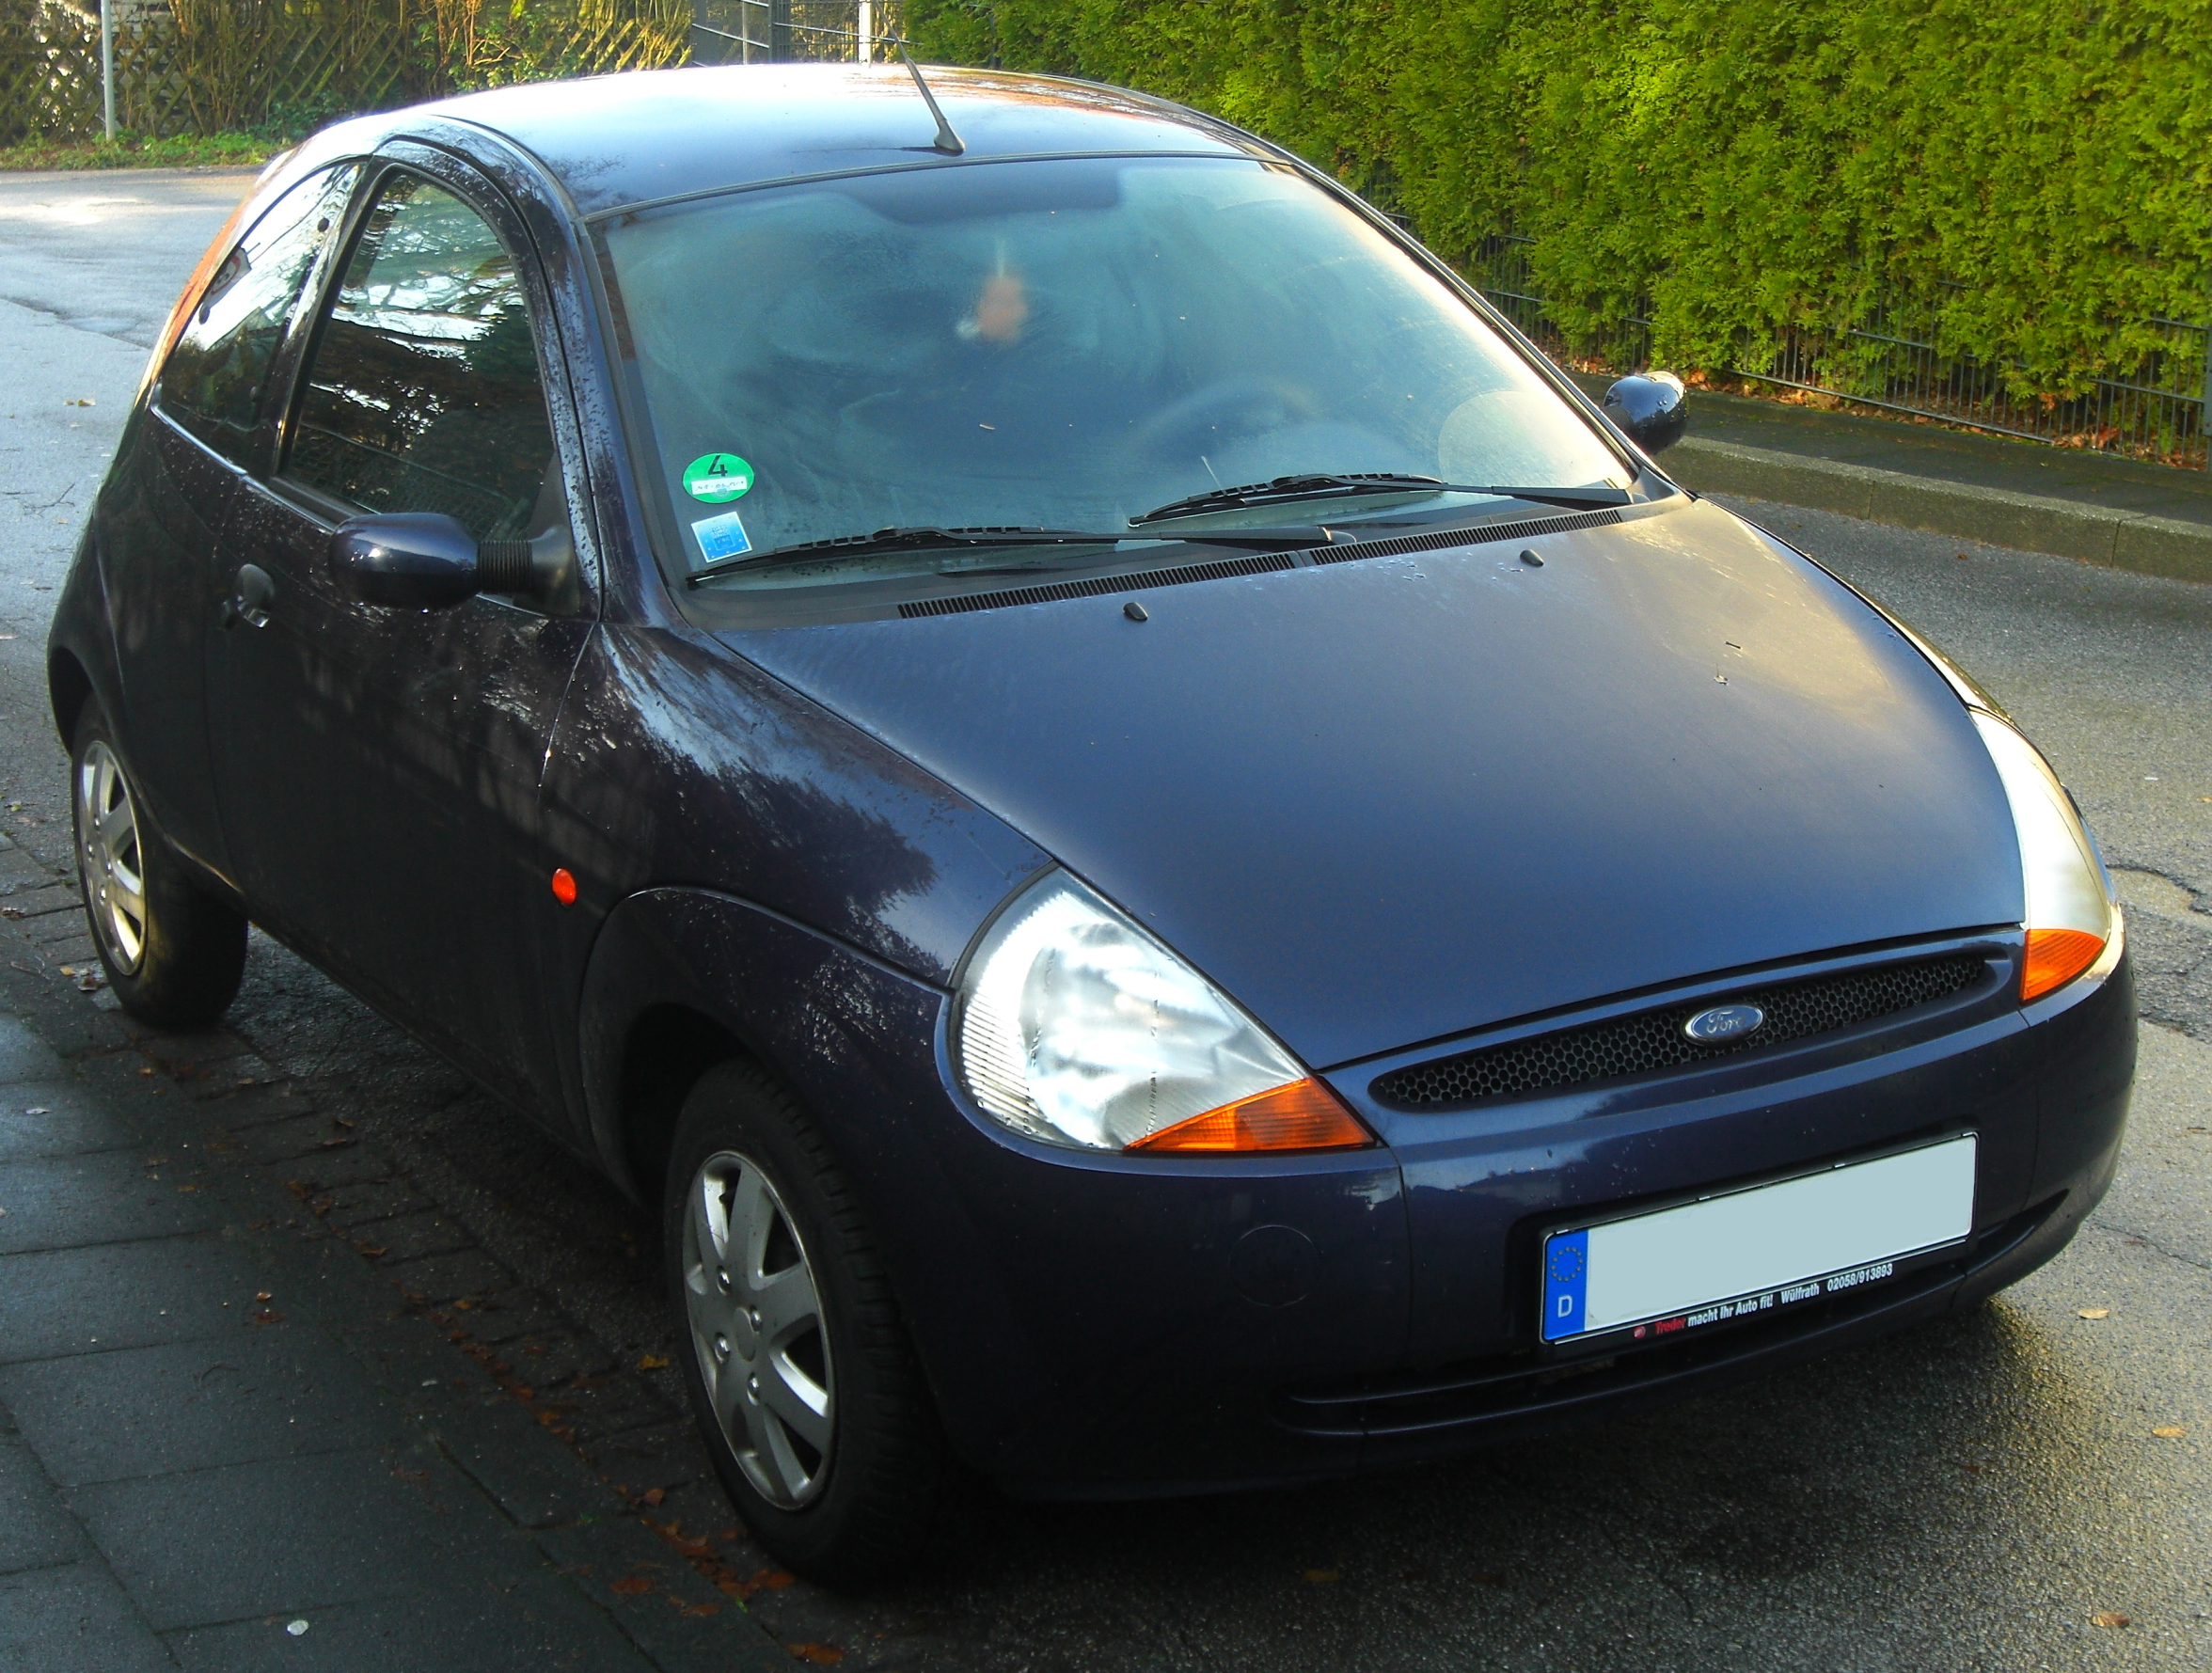 file ford ka i facelift 2005 2008 front mj jpg wikimedia commons. Black Bedroom Furniture Sets. Home Design Ideas